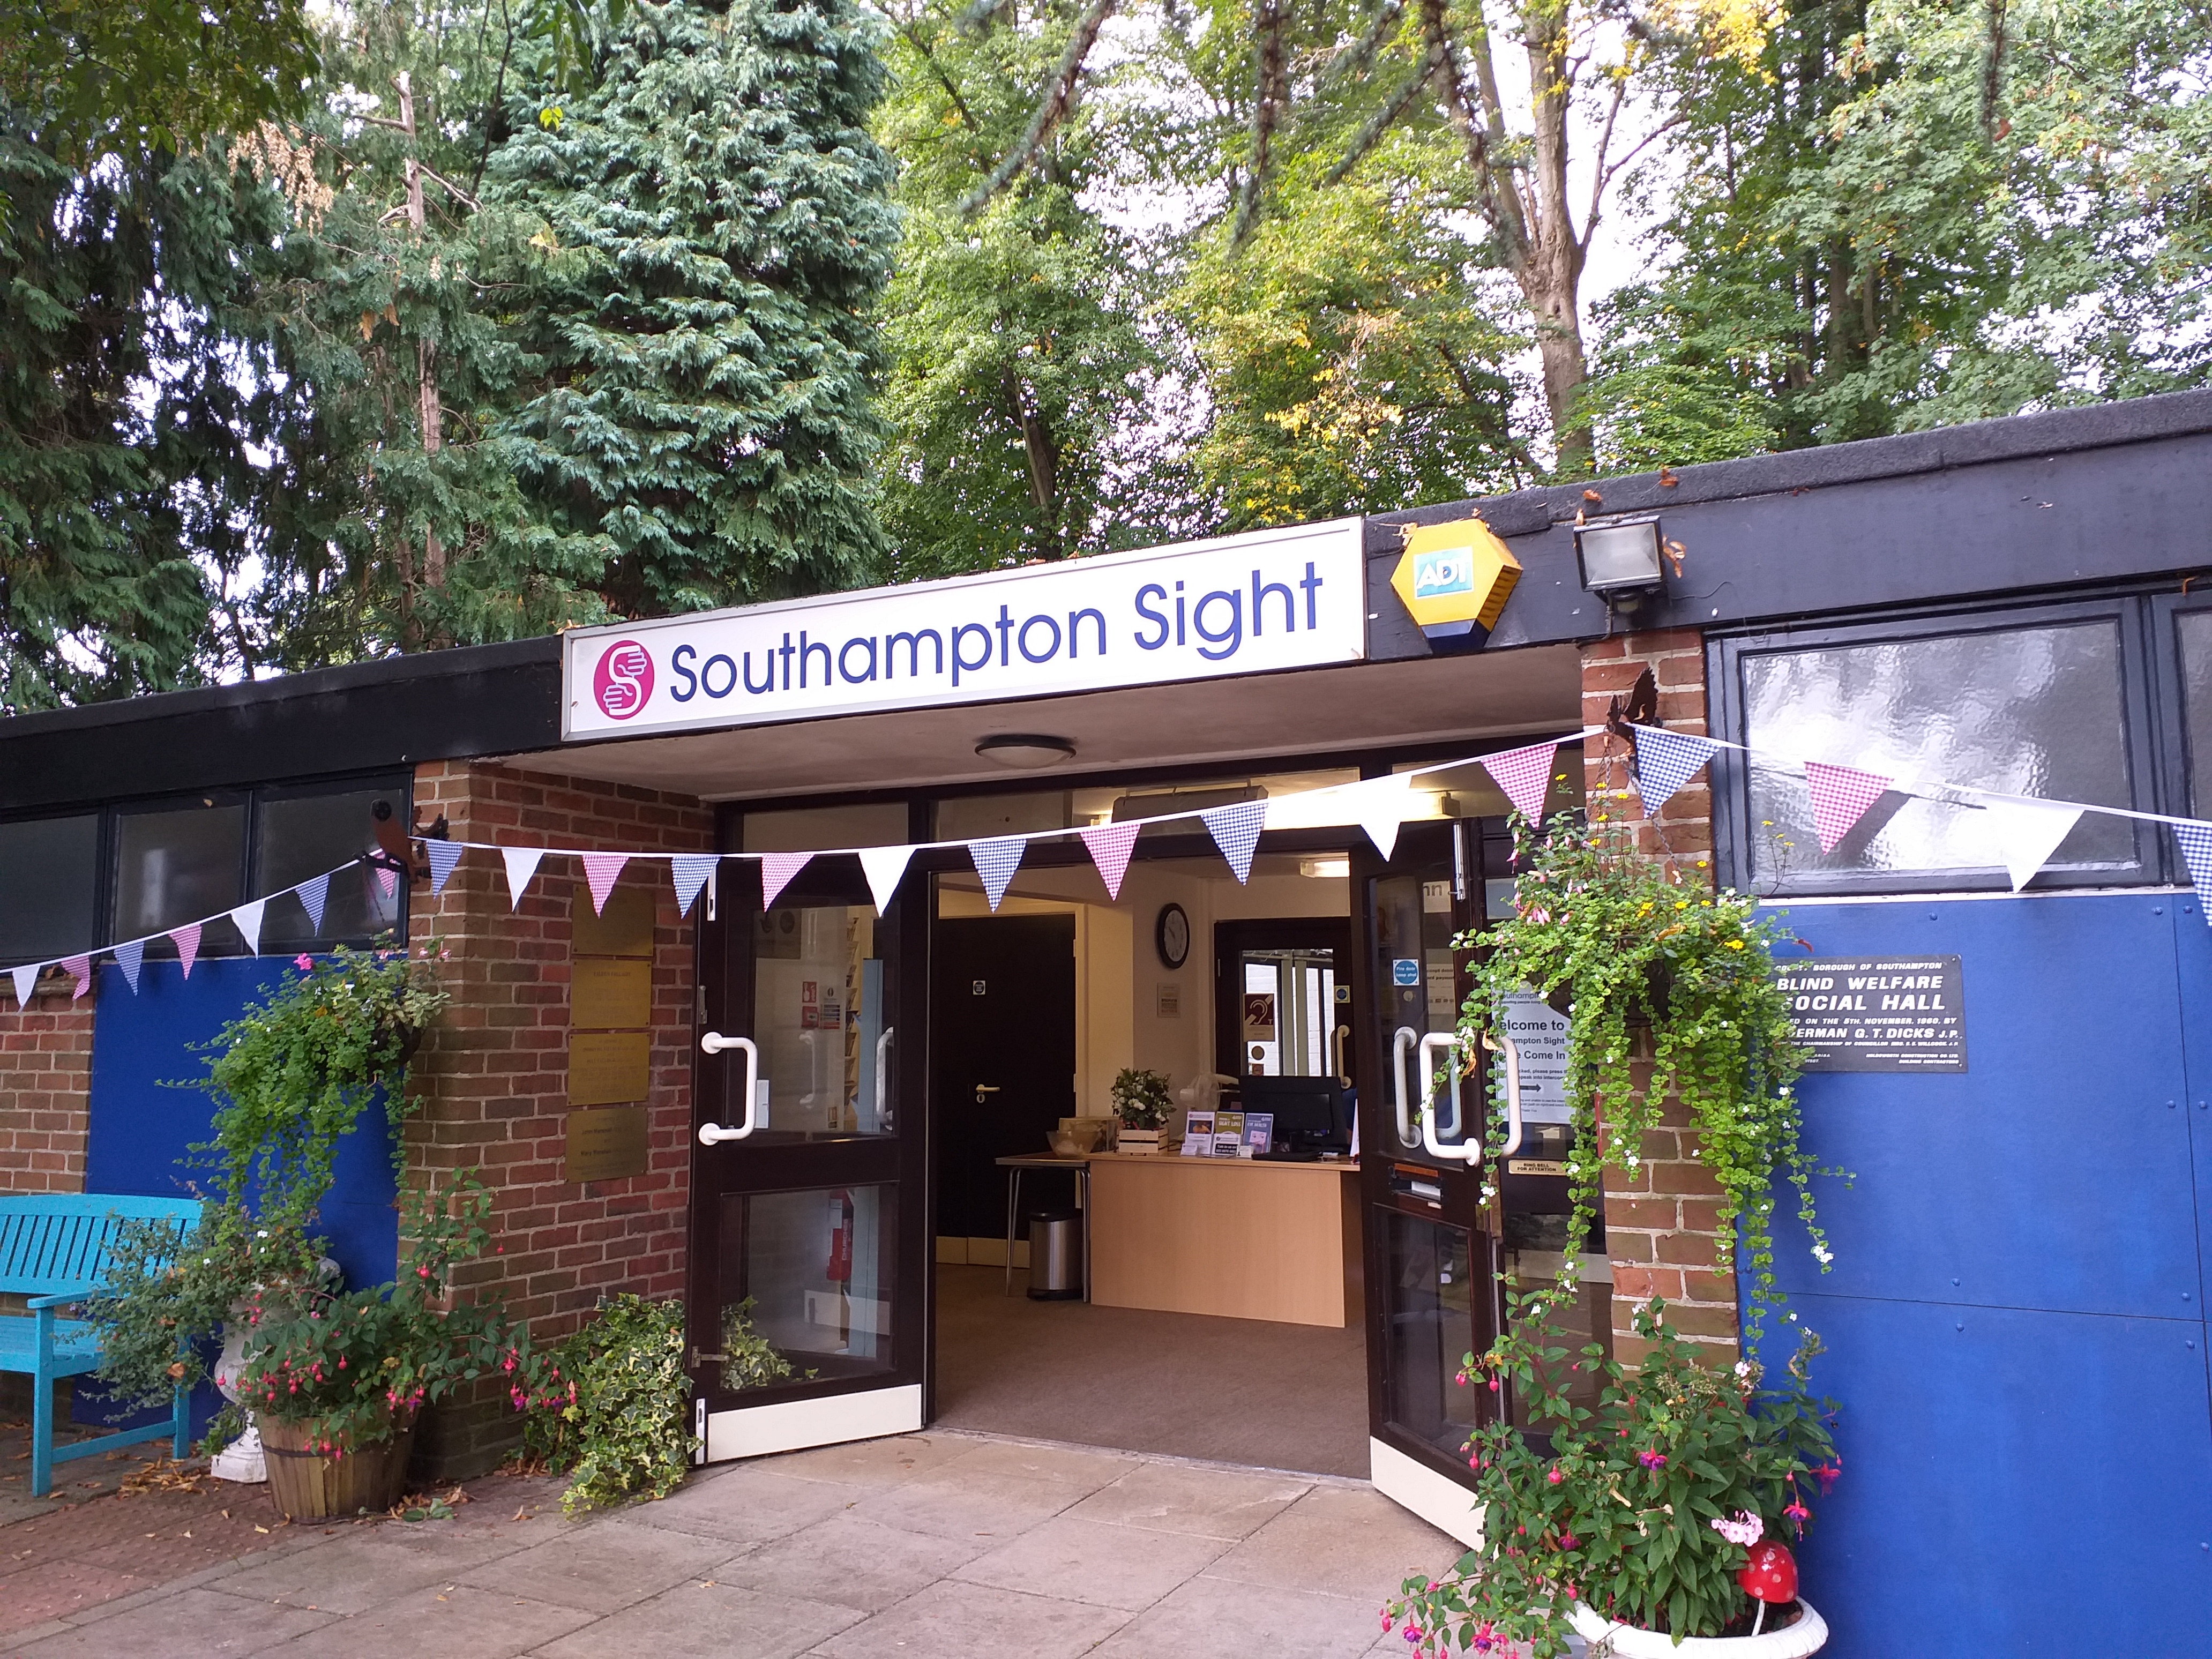 Southampton Sight Entrance